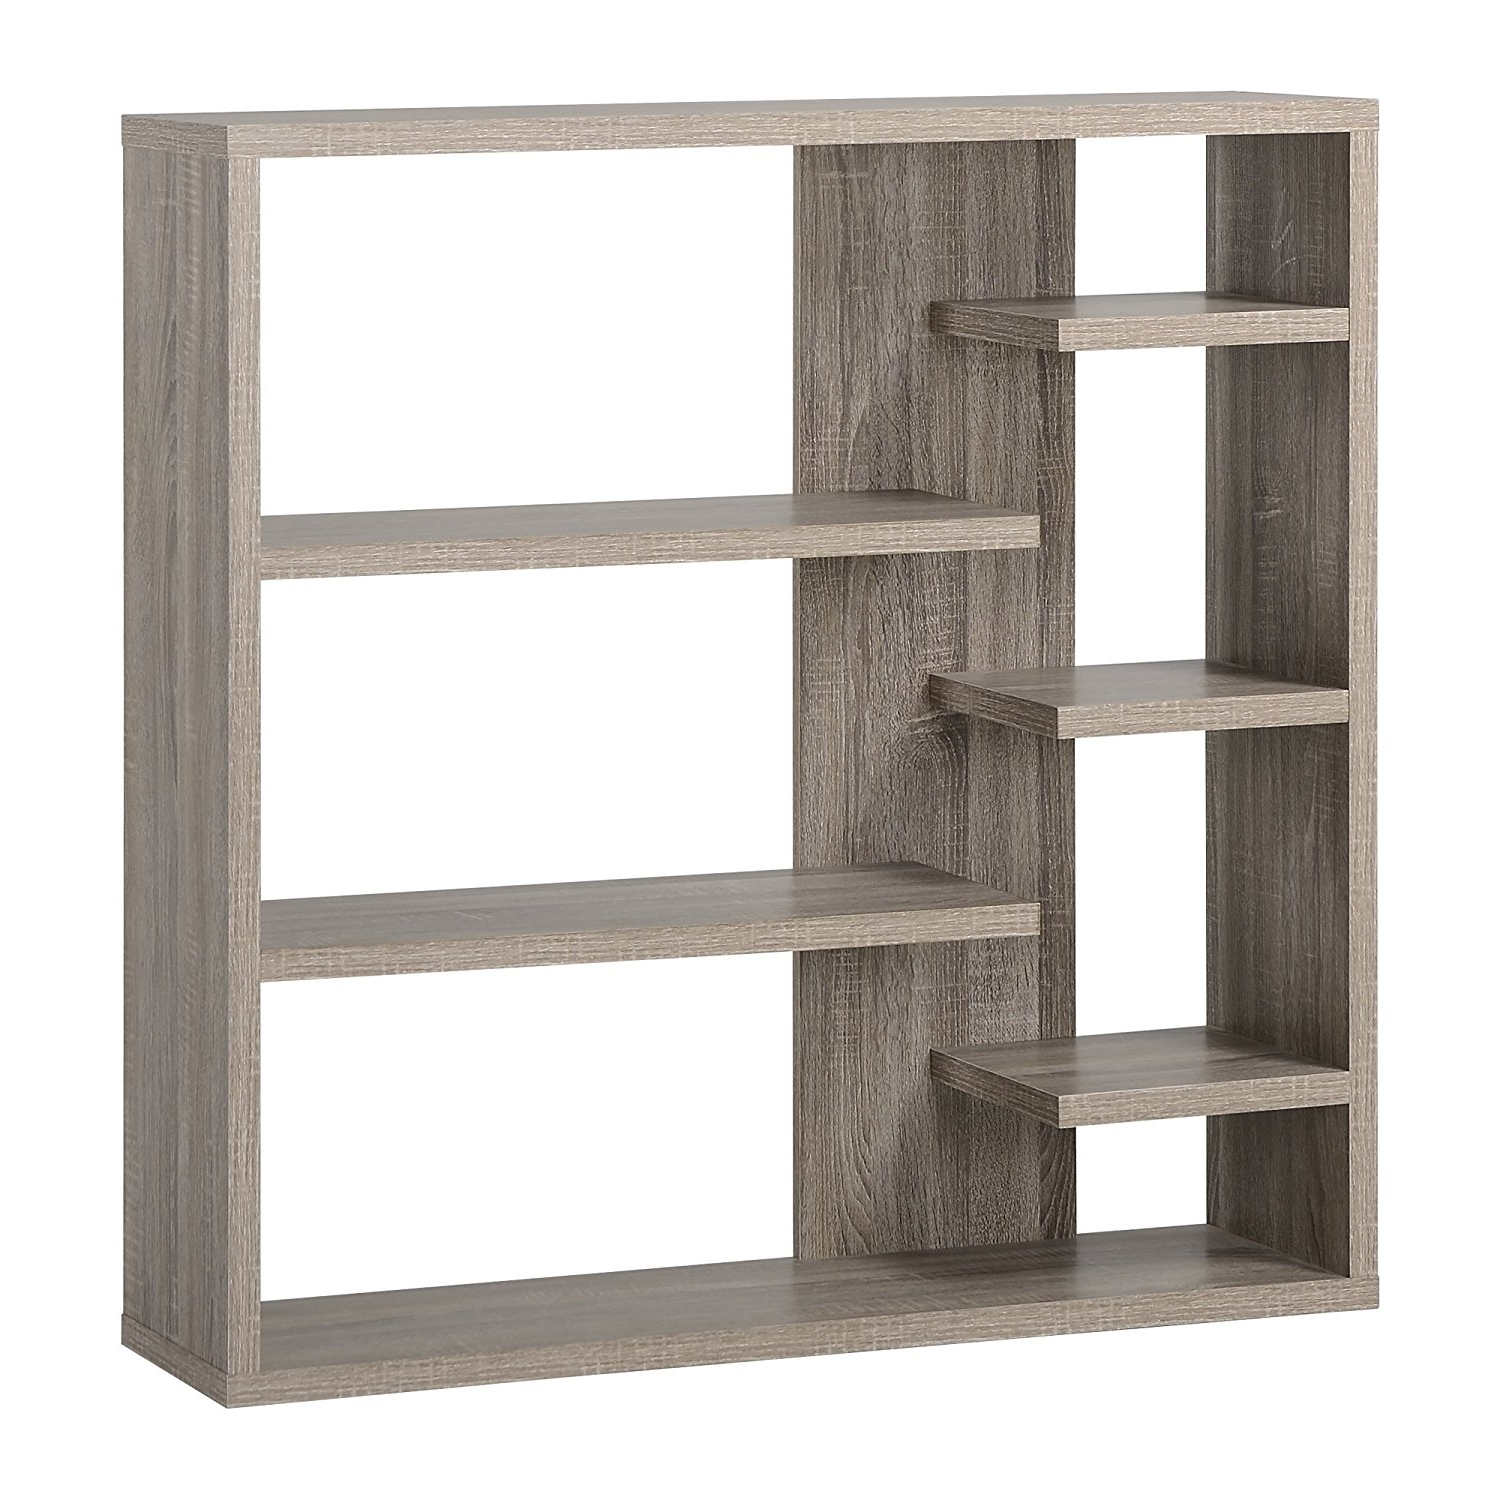 Fashionable Amazon: Homestar 6 Shelf Storage Bookcase In Reclaimed Wood Intended For Reclaimed Wood Bookcases (View 10 of 15)